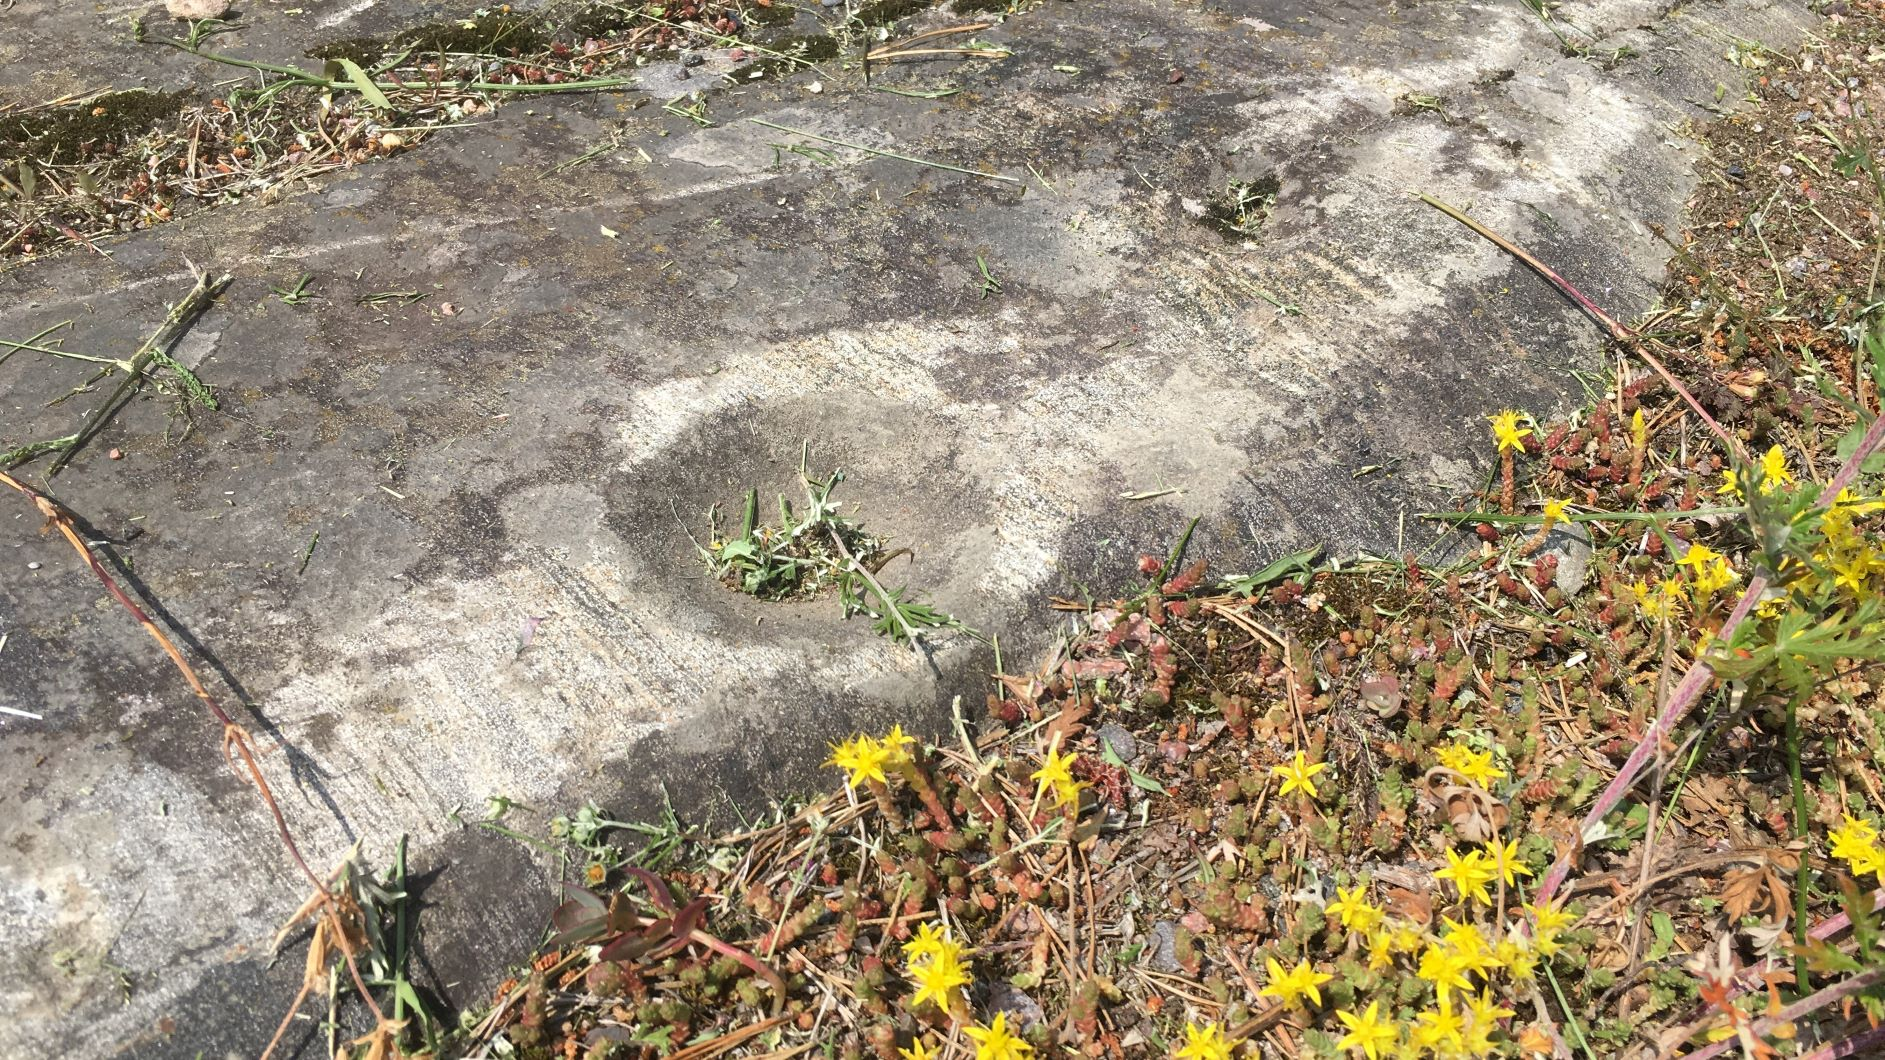 Cup-marked stones in Lohja